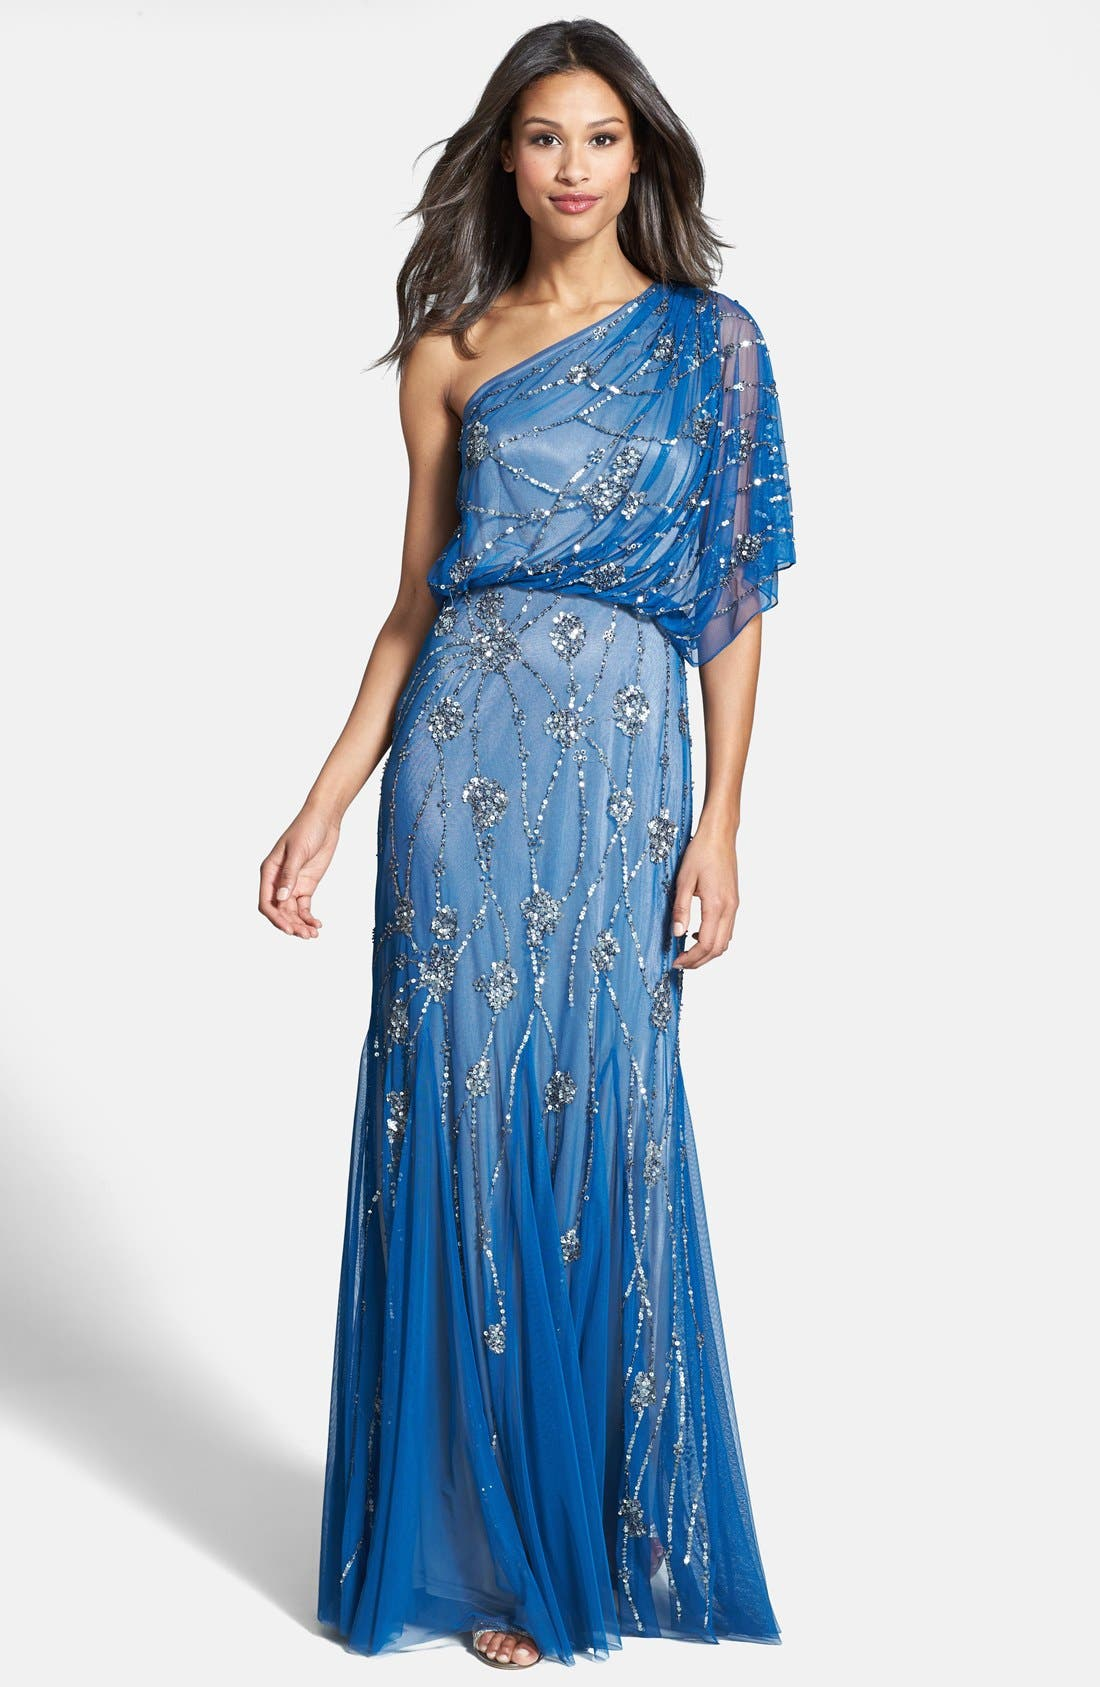 Alternate Image 1 Selected - Adrianna Papell Beaded One Shoulder Blouson Gown